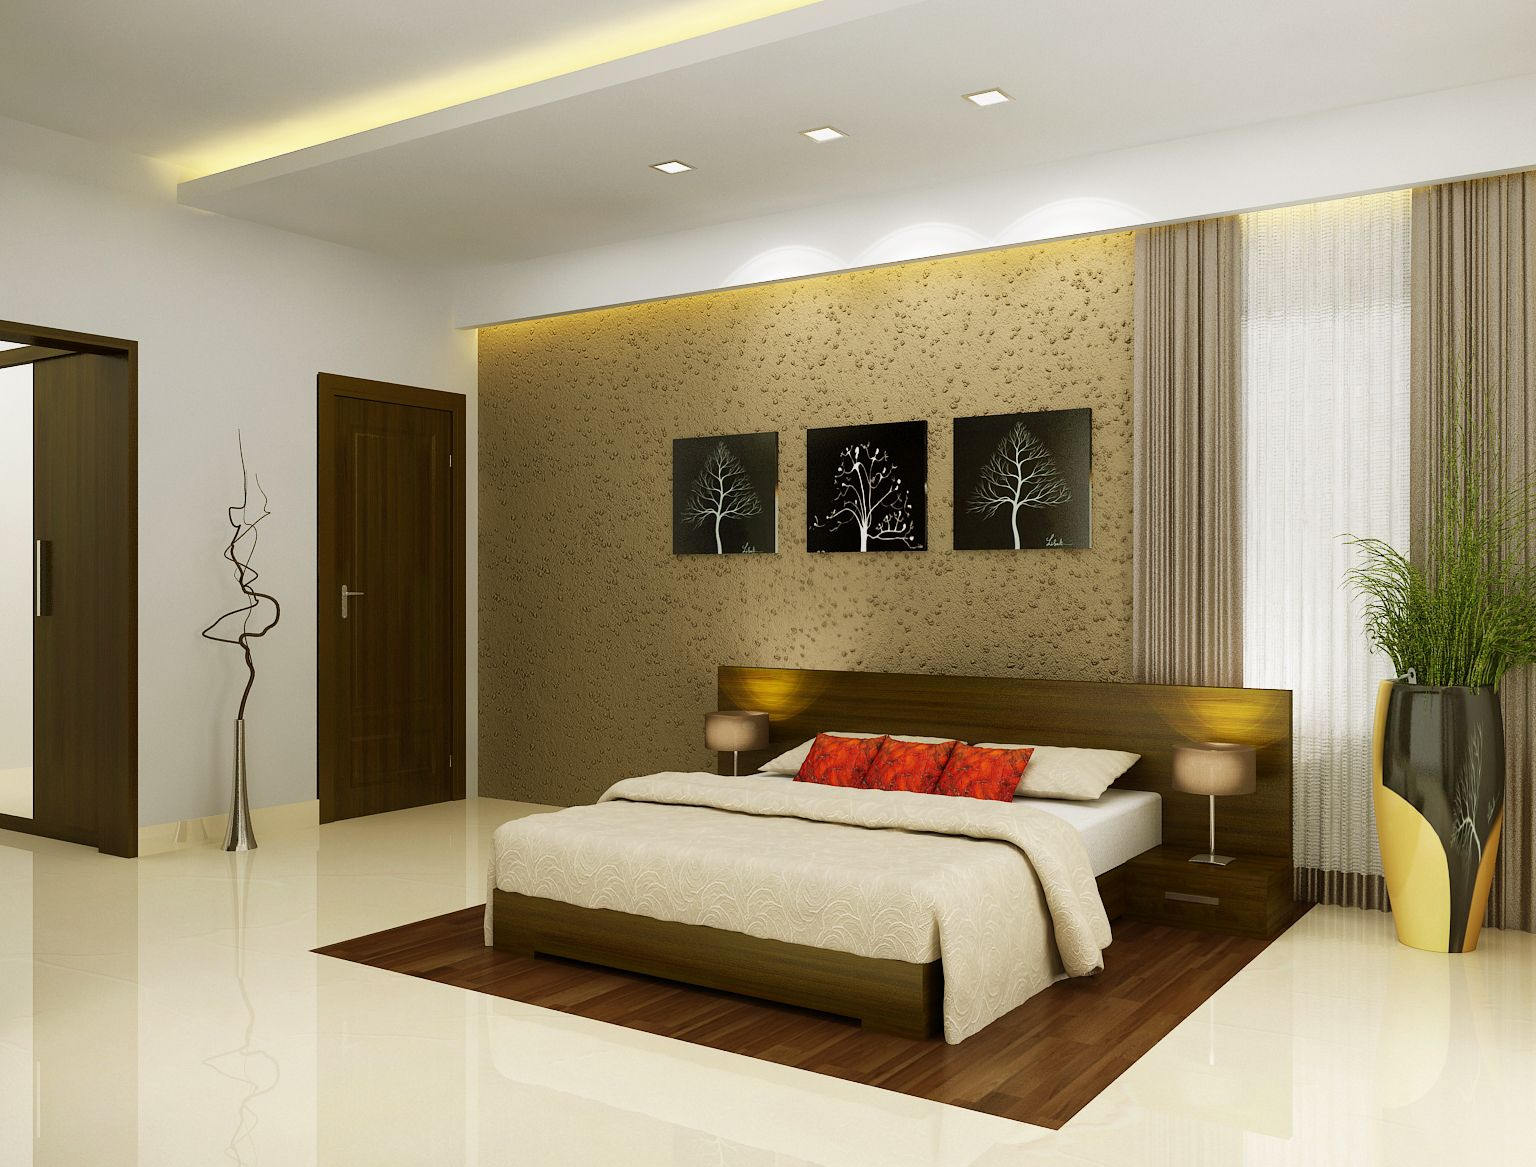 New Energy Bedrooms Style Remodelling Impressive Inspiration